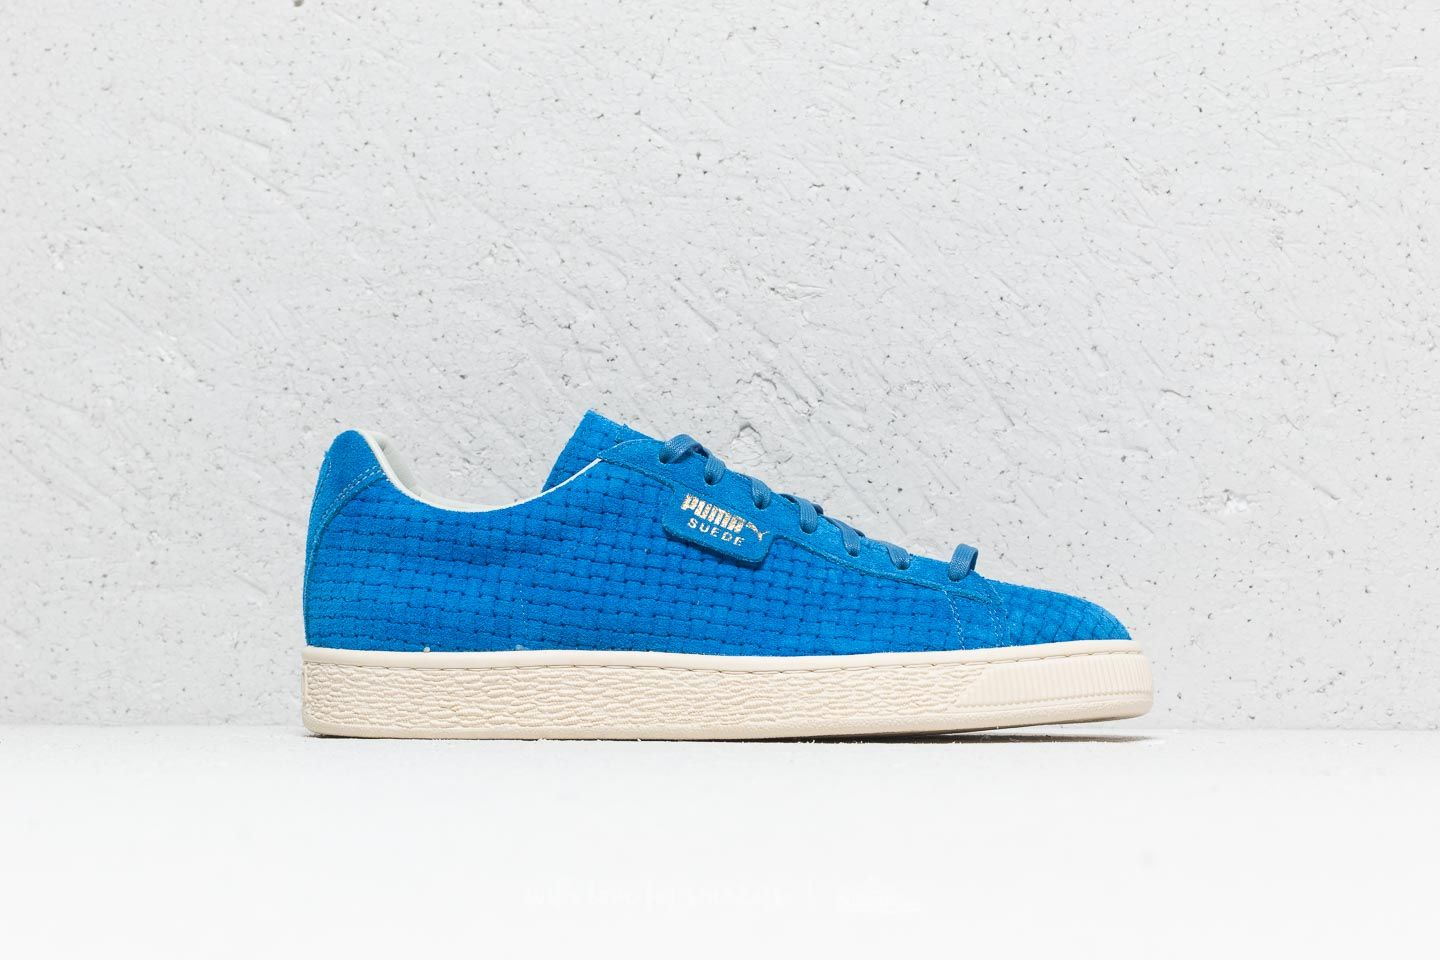 reputable site f05fa 427b3 Puma Suede Classic MIJ Puma Royal | Footshop